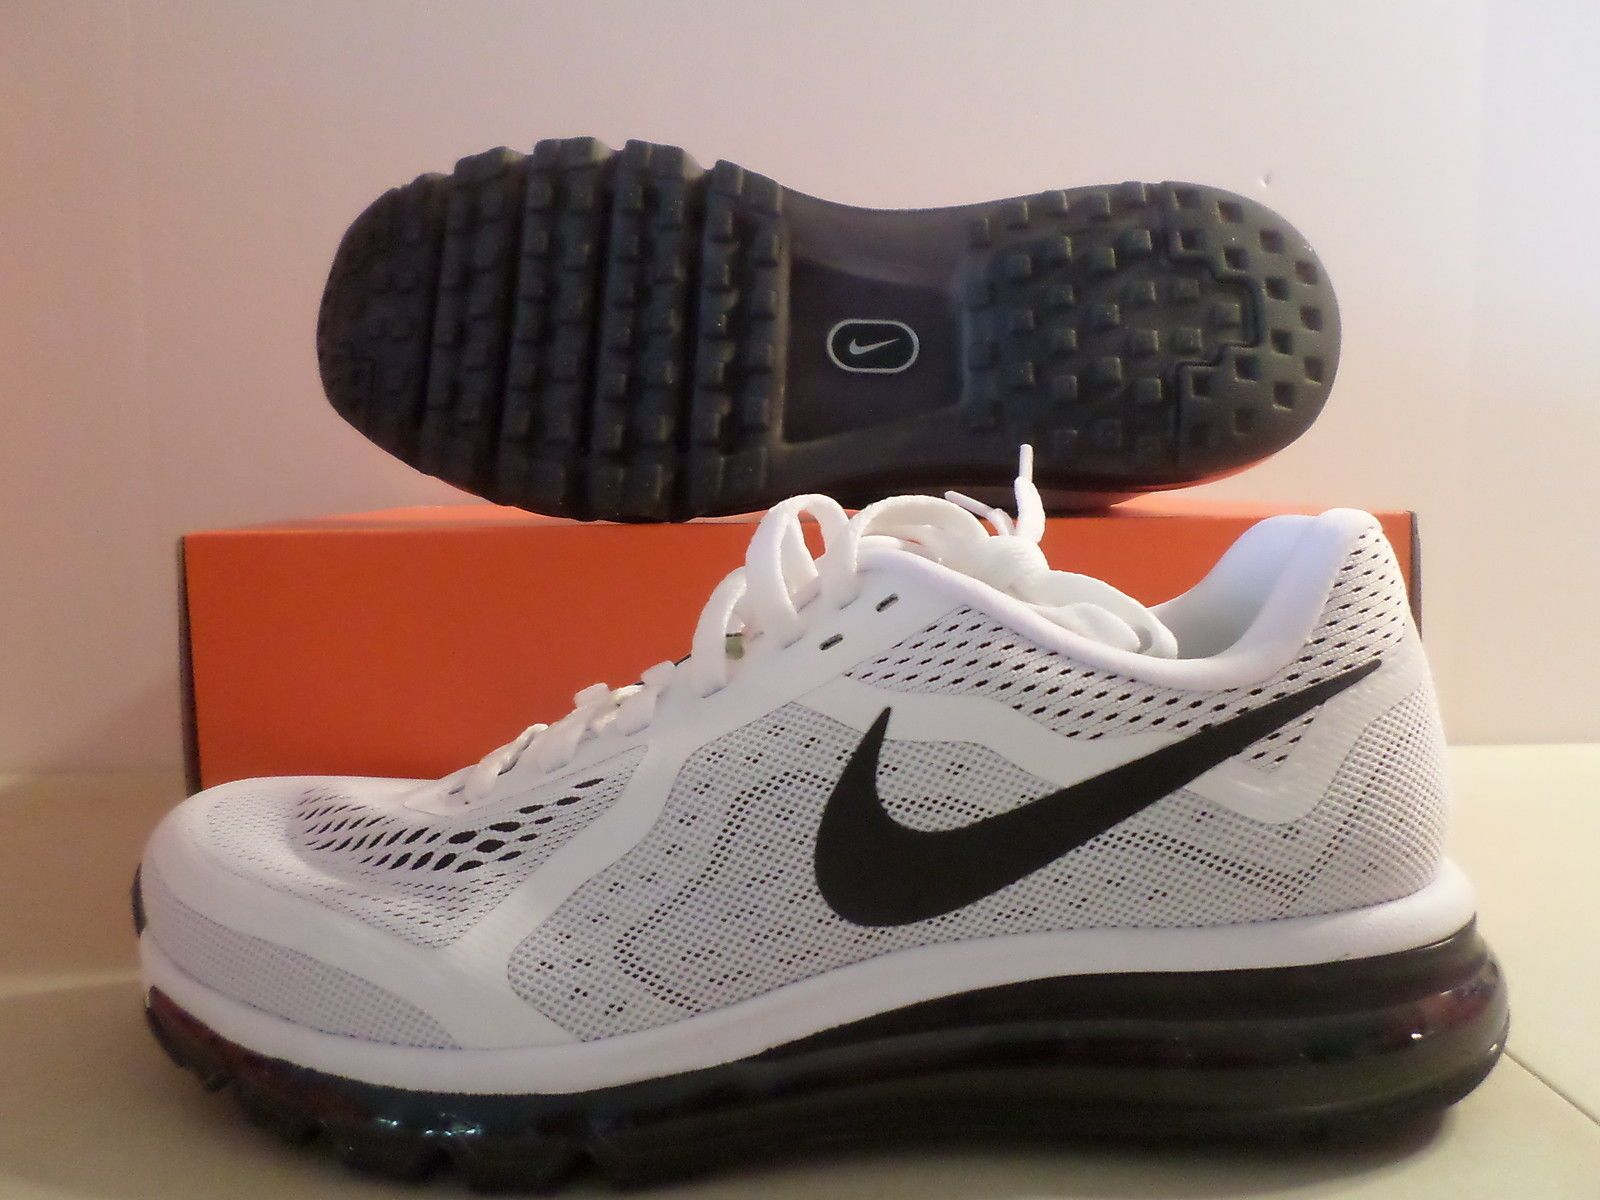 premium selection 26d85 29328 ... uk new nike air max 2014 360 white black running shoes sz 11 ebay 68408  aca45